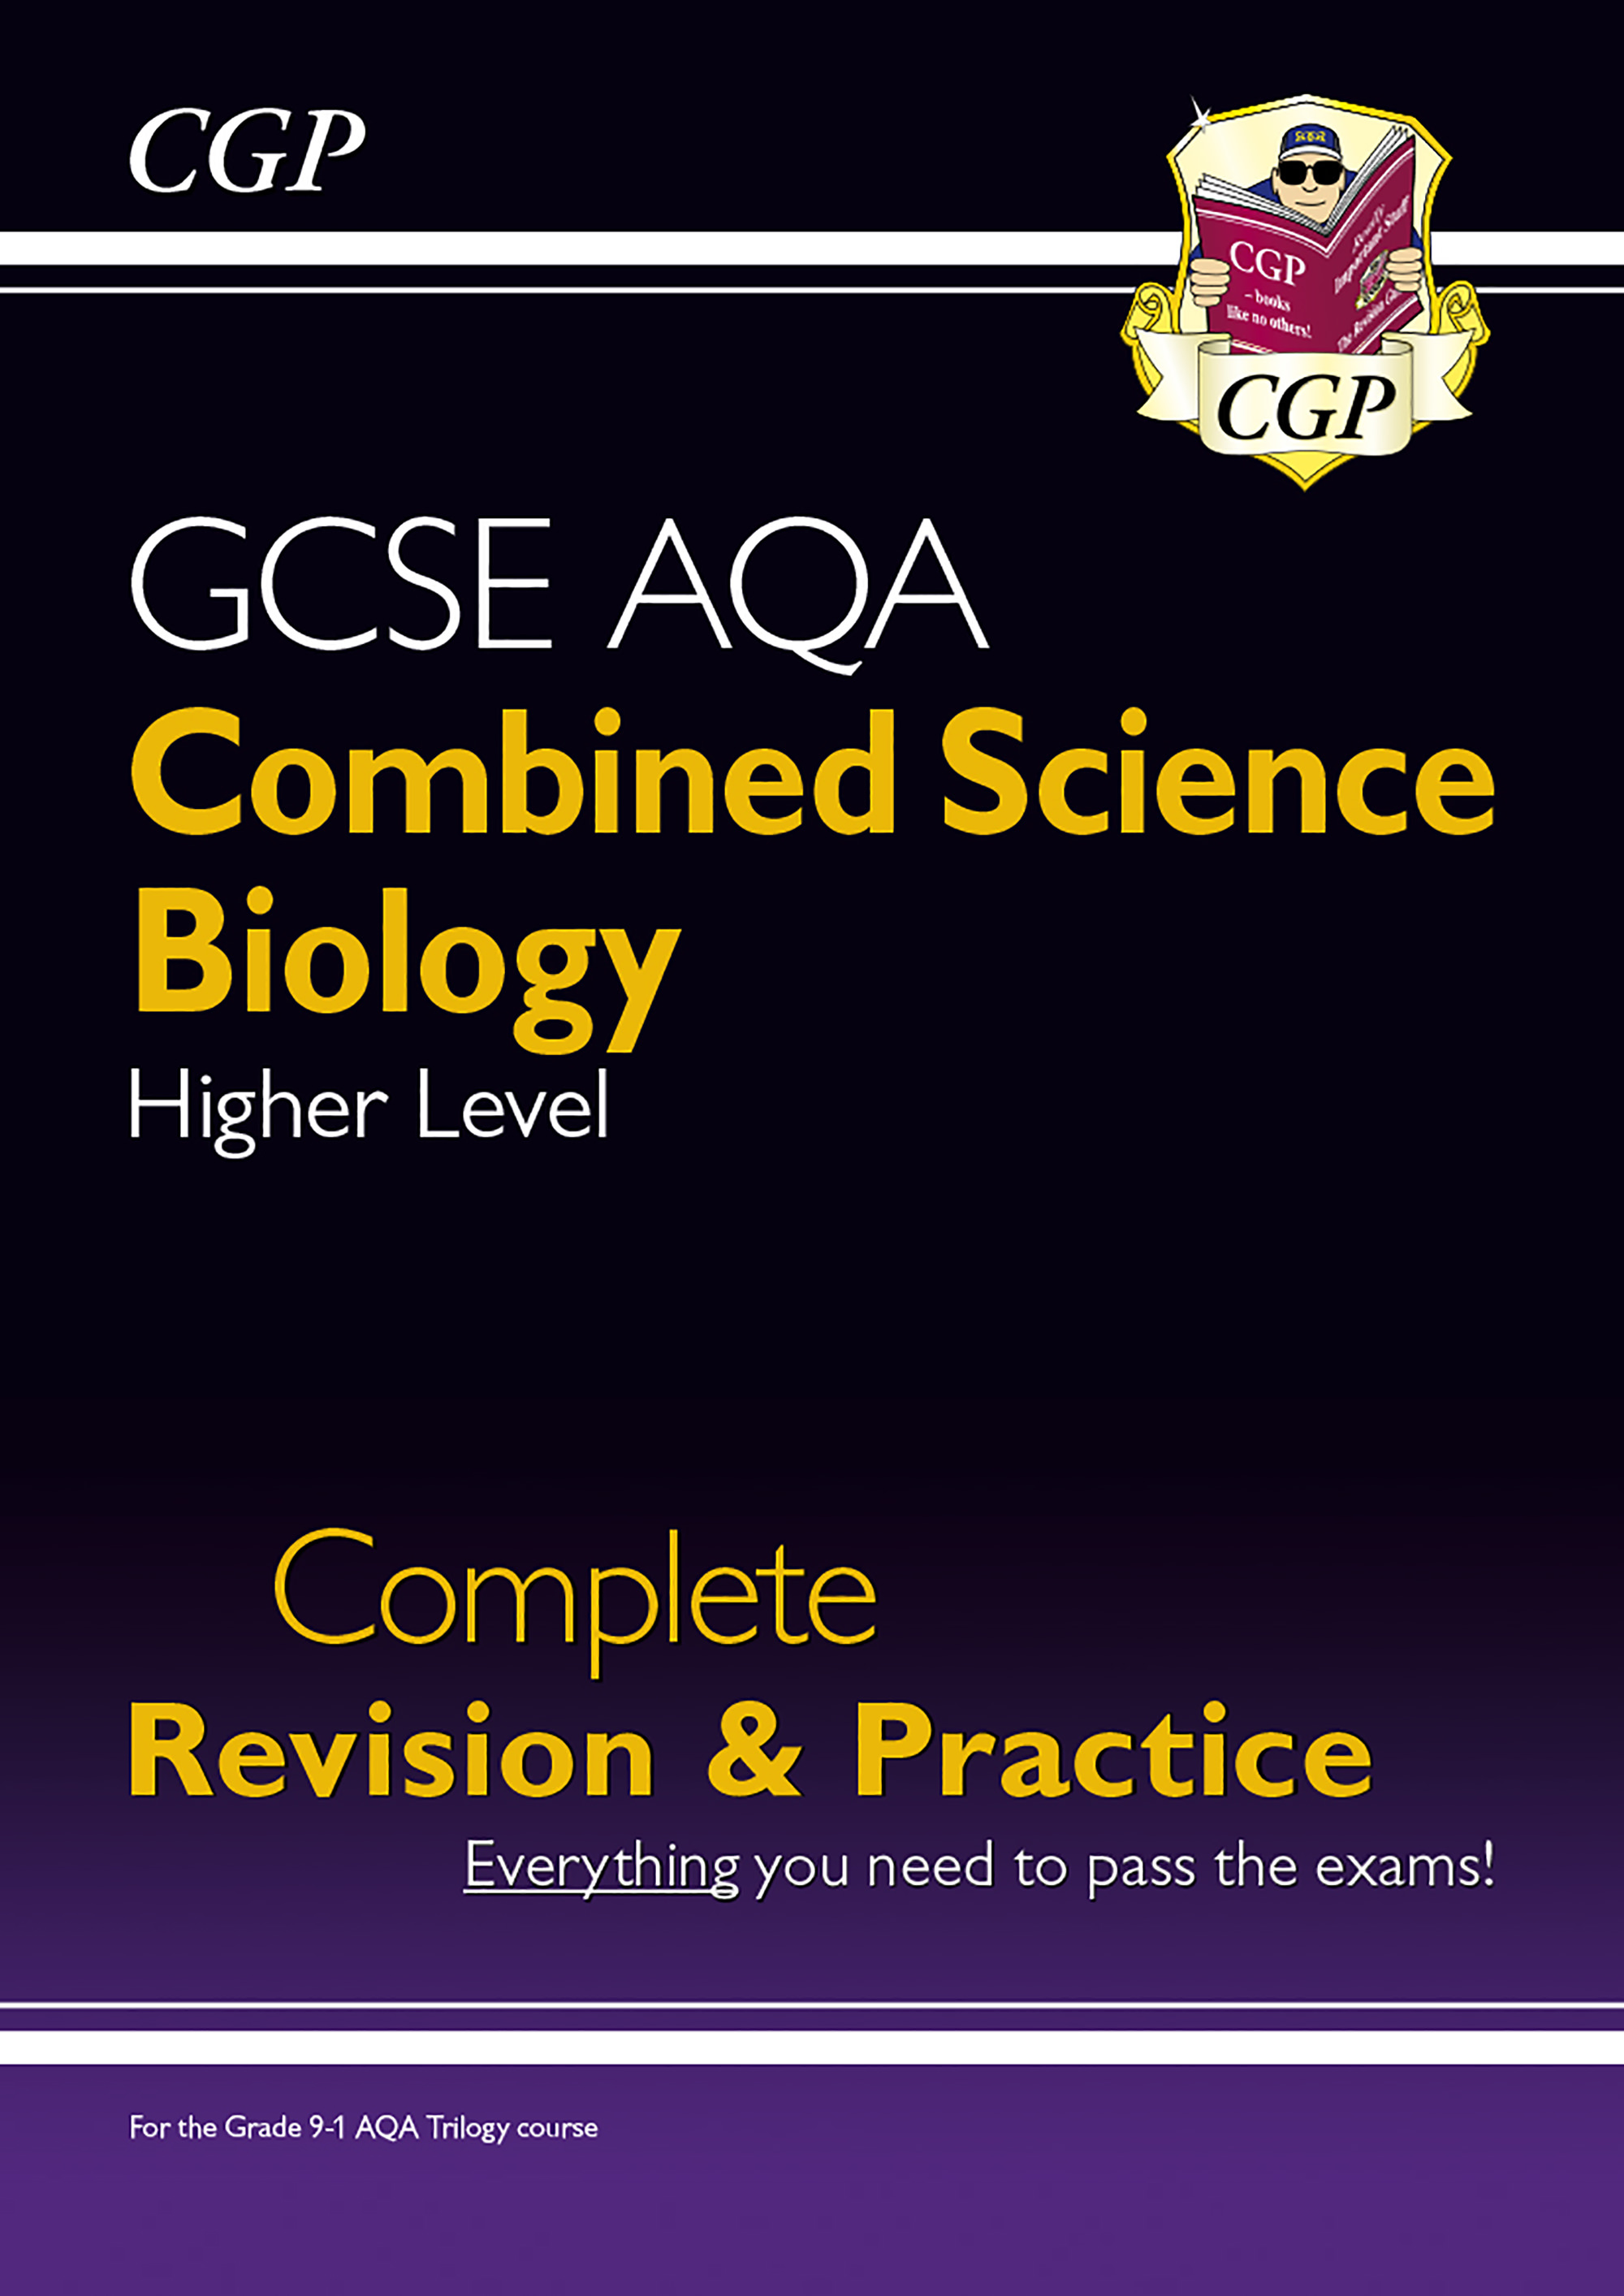 SCBAS41DK - New 9-1 GCSE Combined Science: Biology AQA Higher Complete Revision & Practice